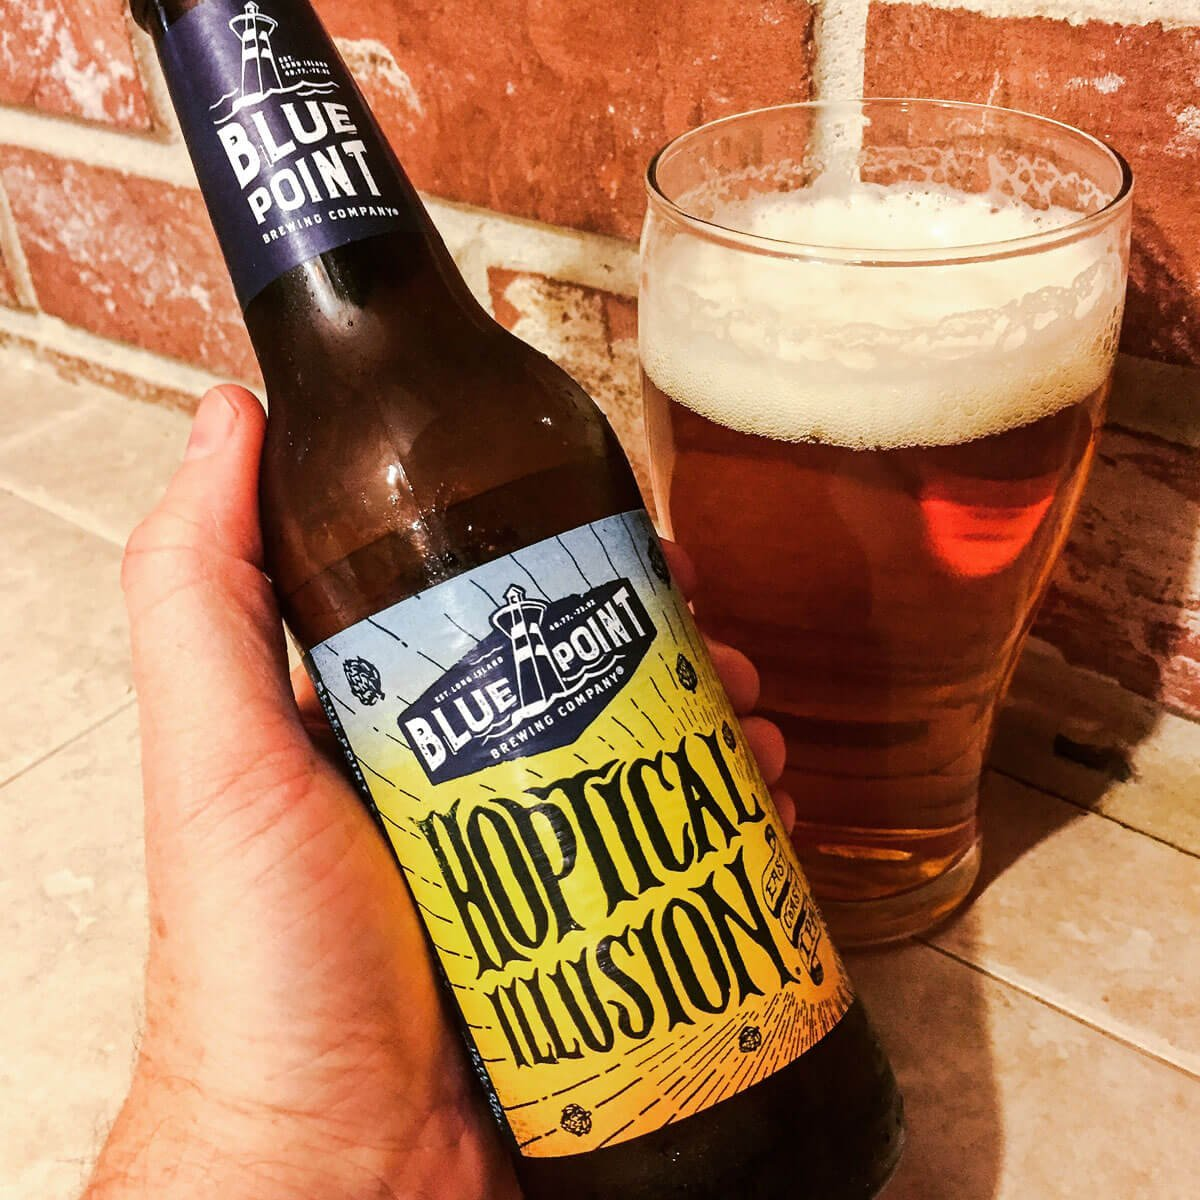 Hoptical Illusion, an American IPA by Blue Point Brewing Company